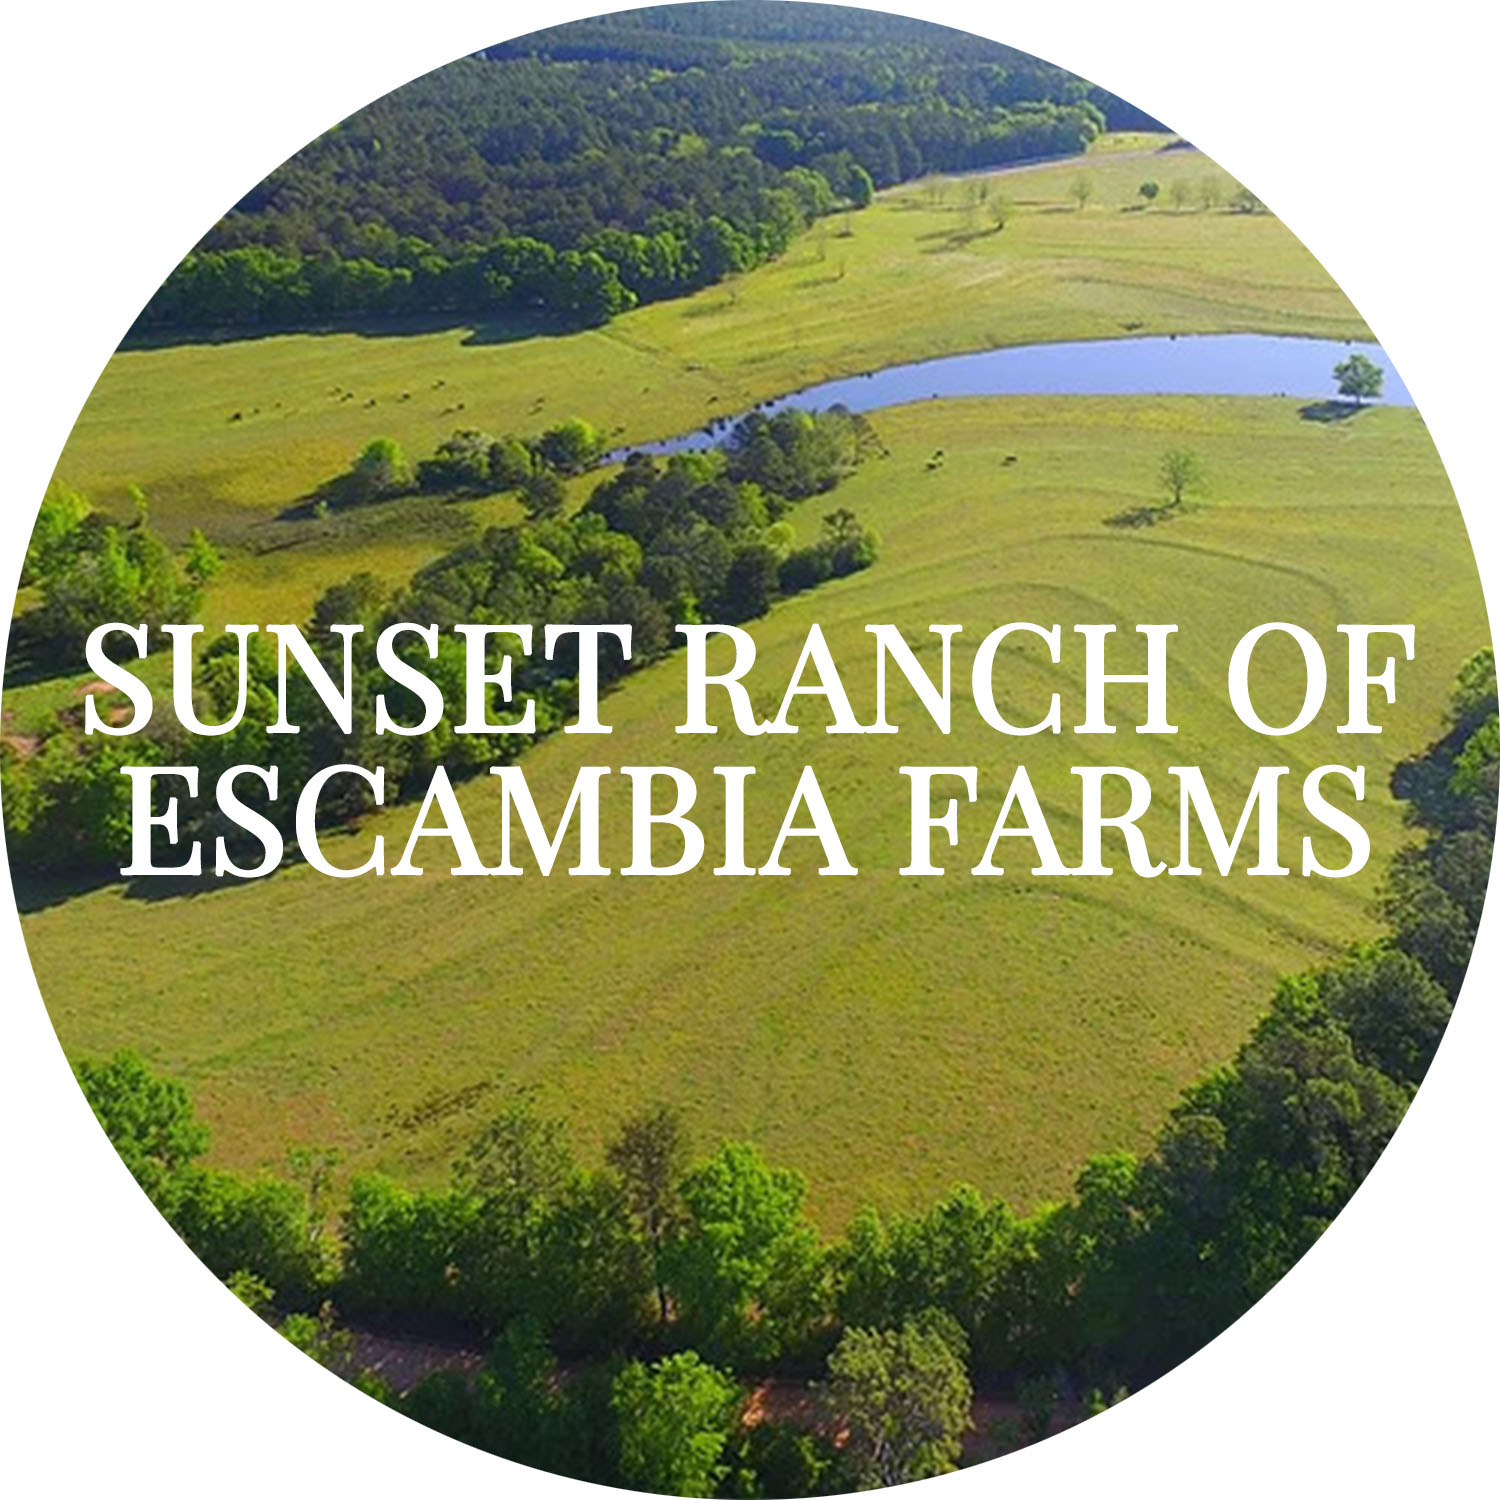 Sunset Ranch of Escambia Farms